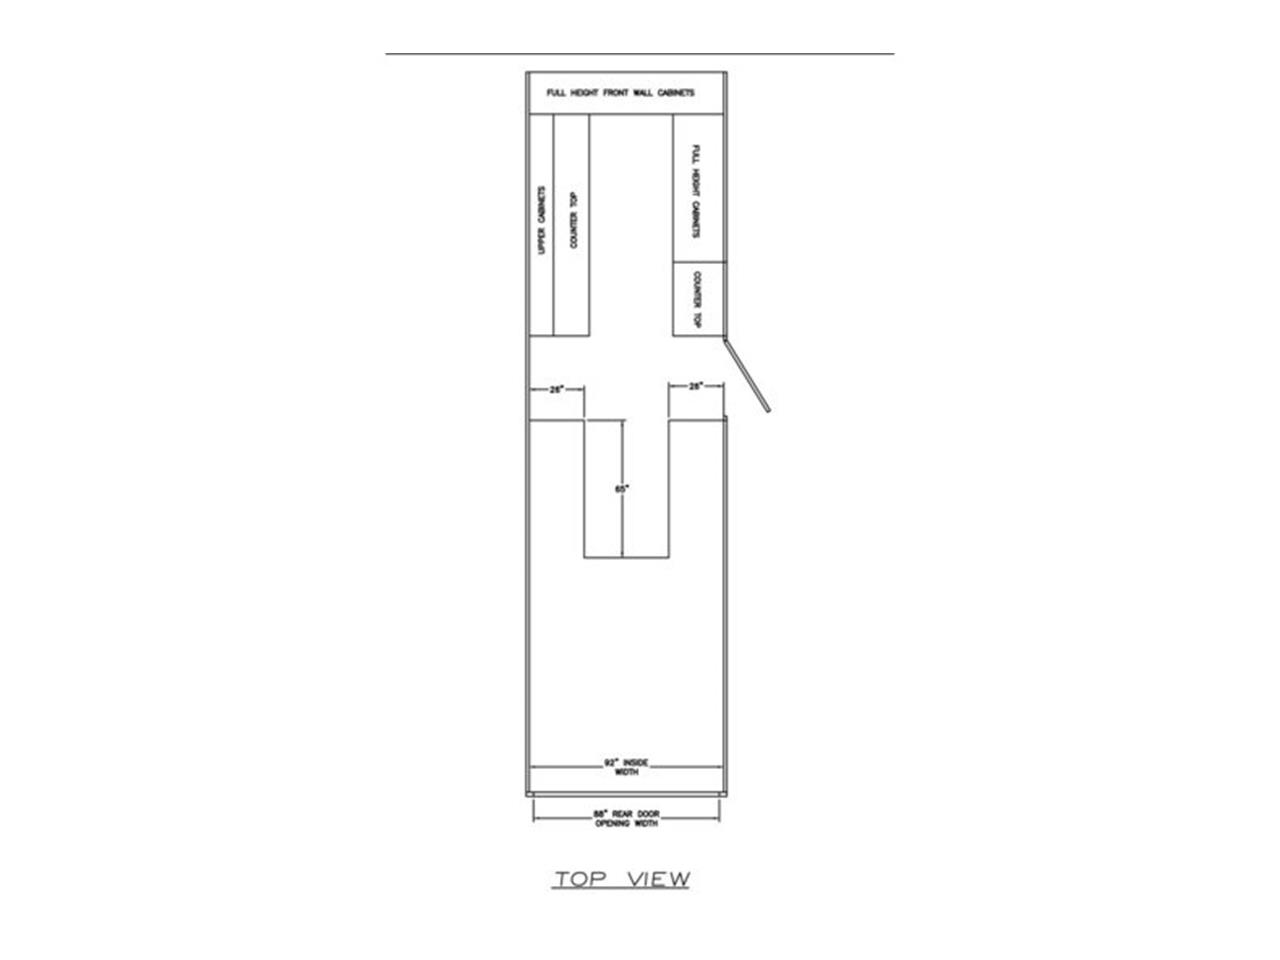 kenworth wiring diagram kenworth k on kenworth w900b wiring diagram,  kenworth t800 wiring diagram,